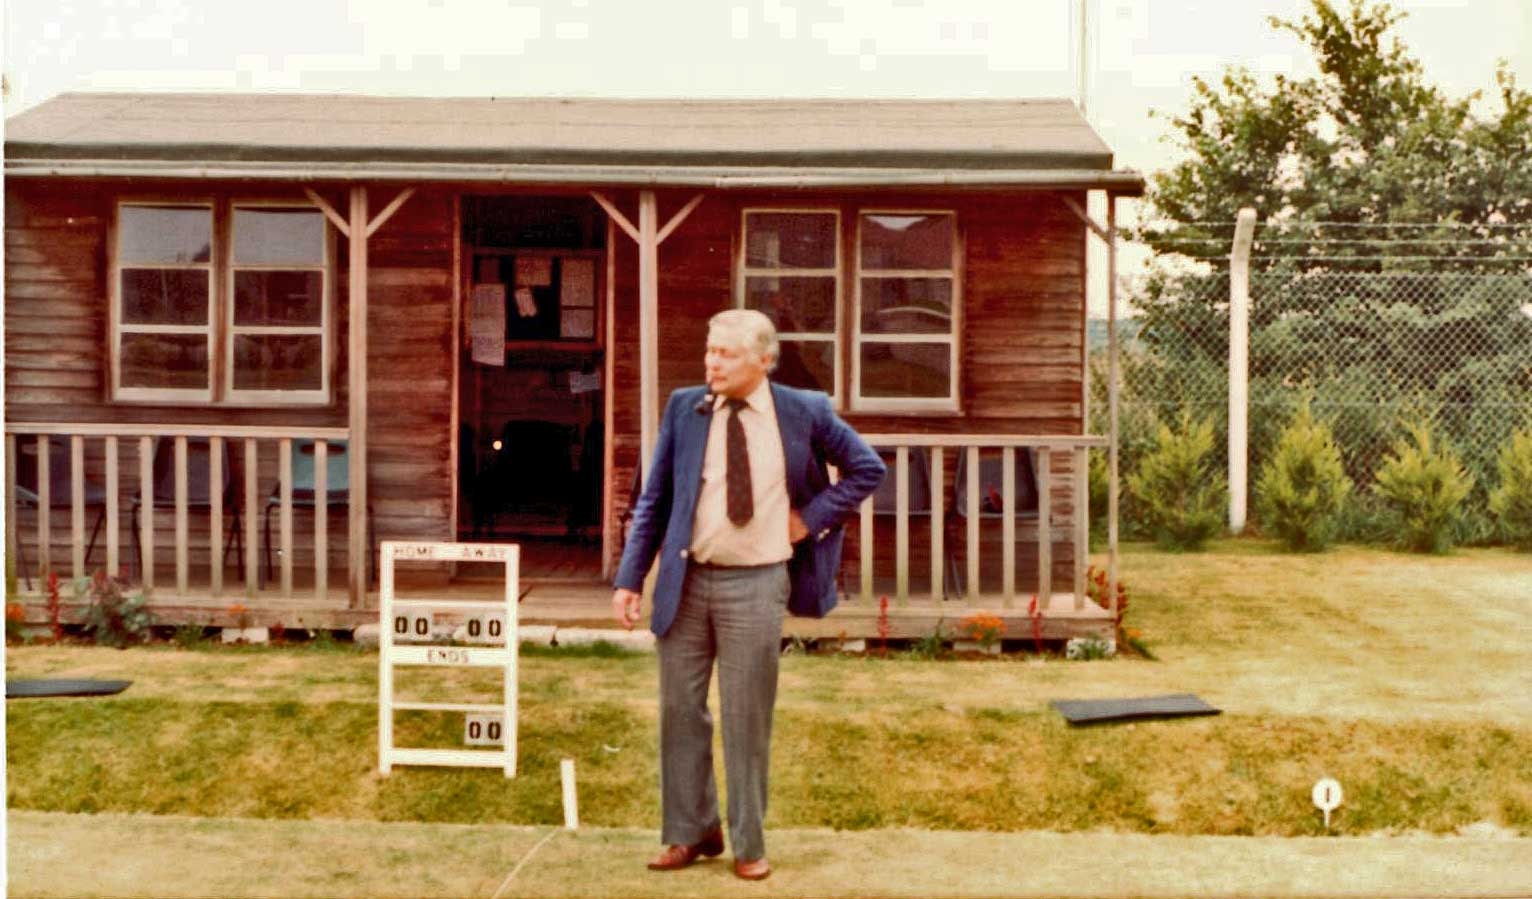 Original Cedarwood Pavillion with first Club Captain, Don Milnes in foreground